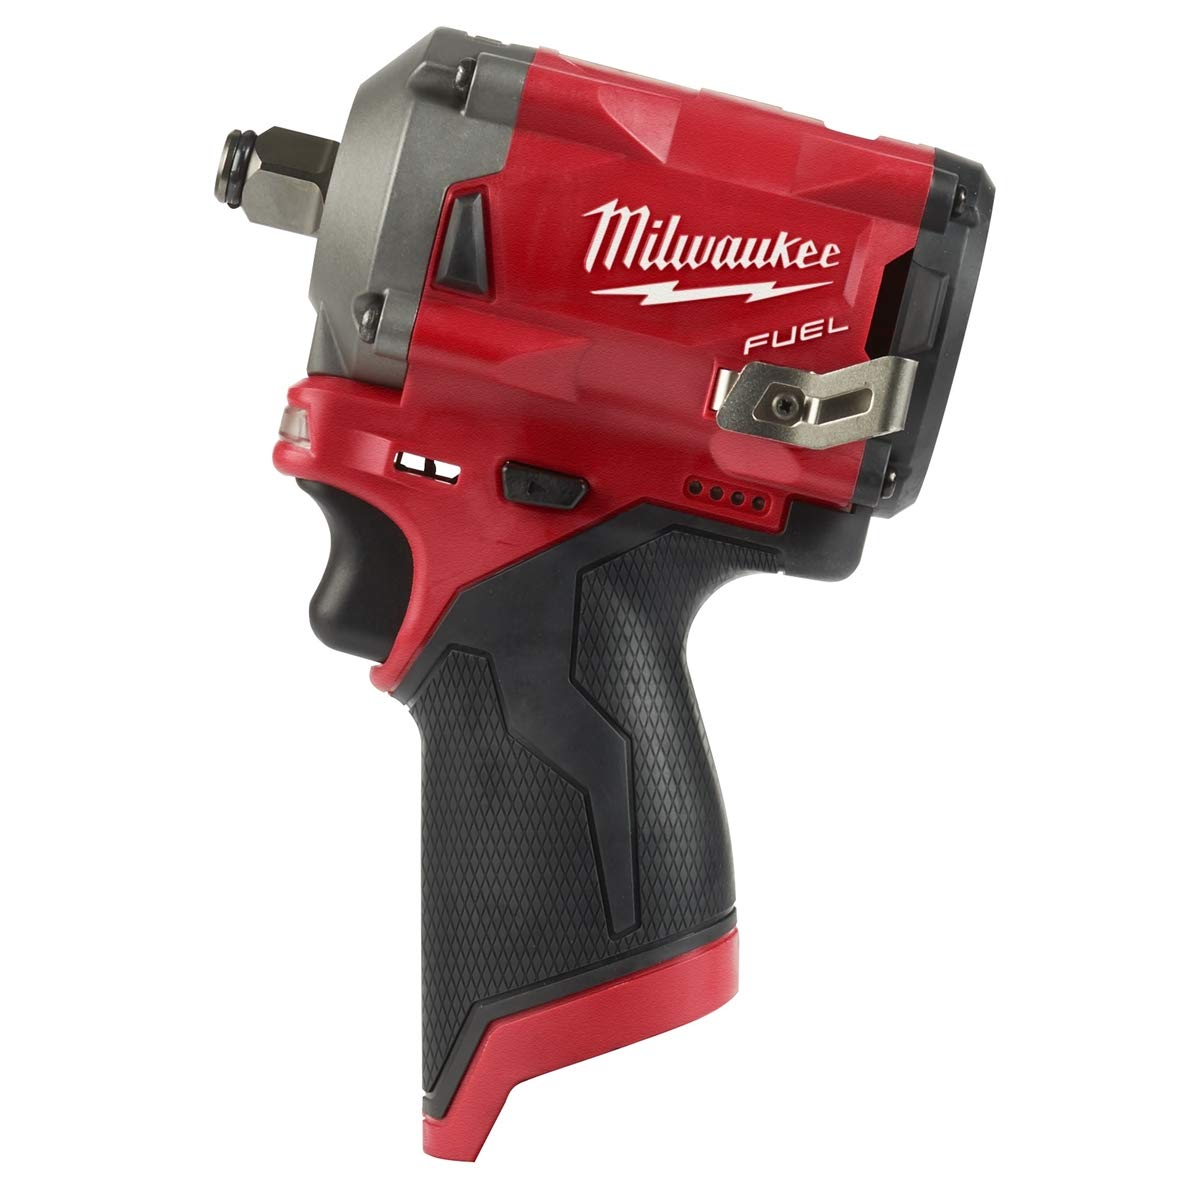 MILWAUKEE M12 FUEL Stubby 1 2 in. Impact